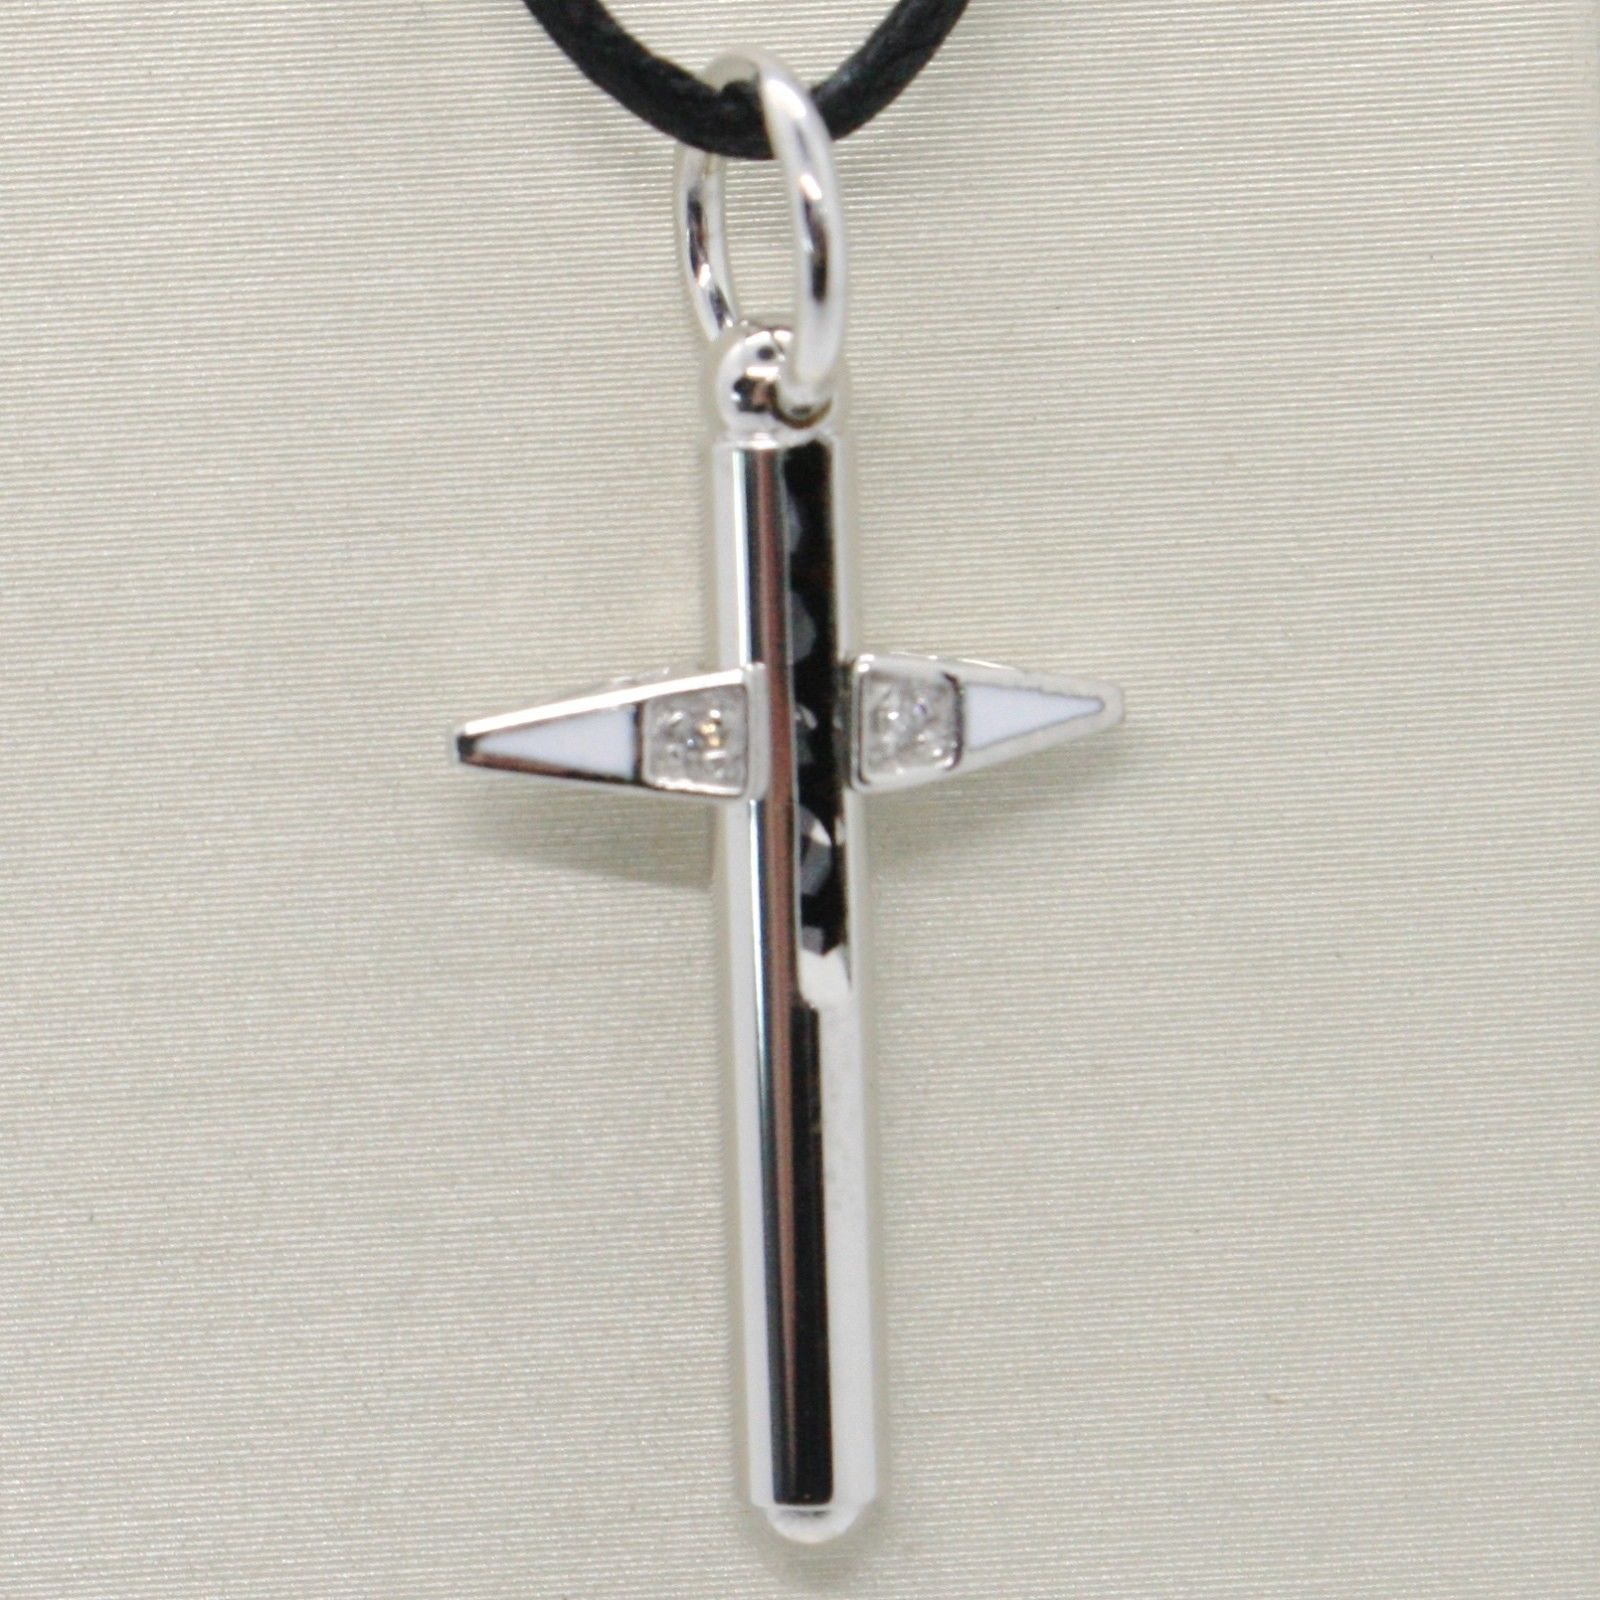 18K WHITE GOLD CROSS WITH DIAMOND, BLACK SPINEL, TUBE, STYLIZED, MADE IN ITALY